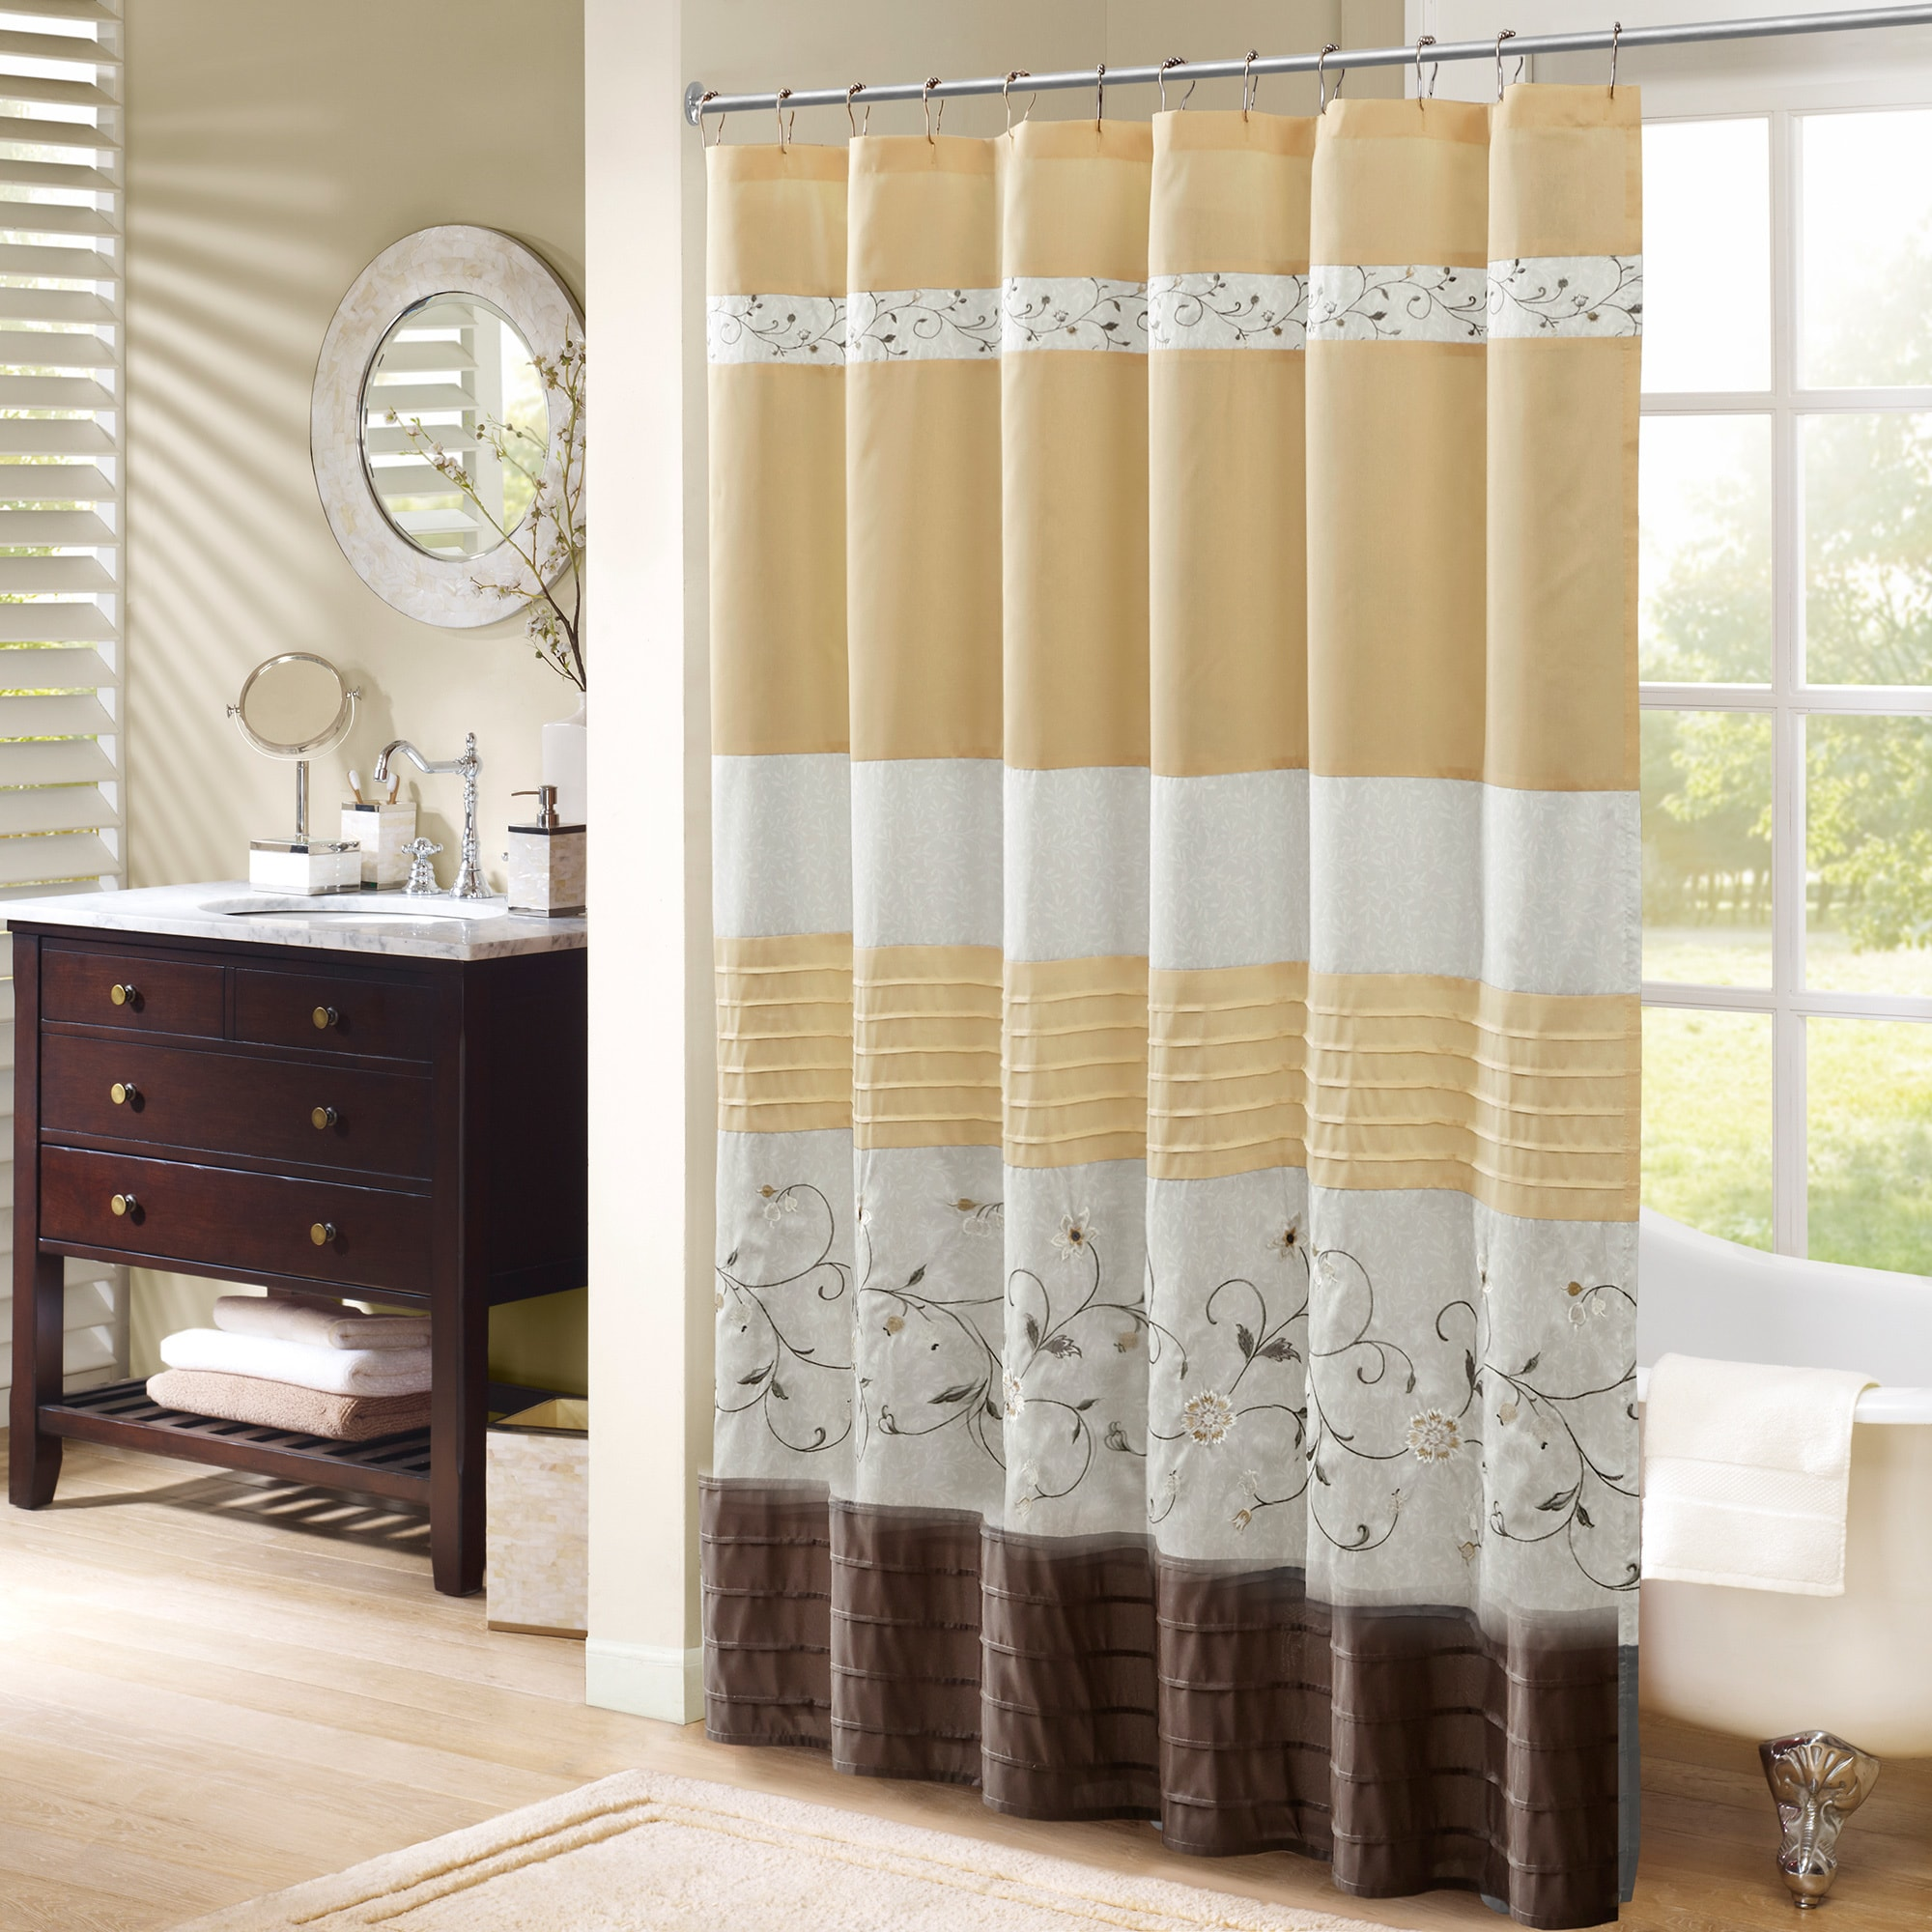 Best 76 Inch Shower Curtain Pictures Inspiration - Bathroom with ...